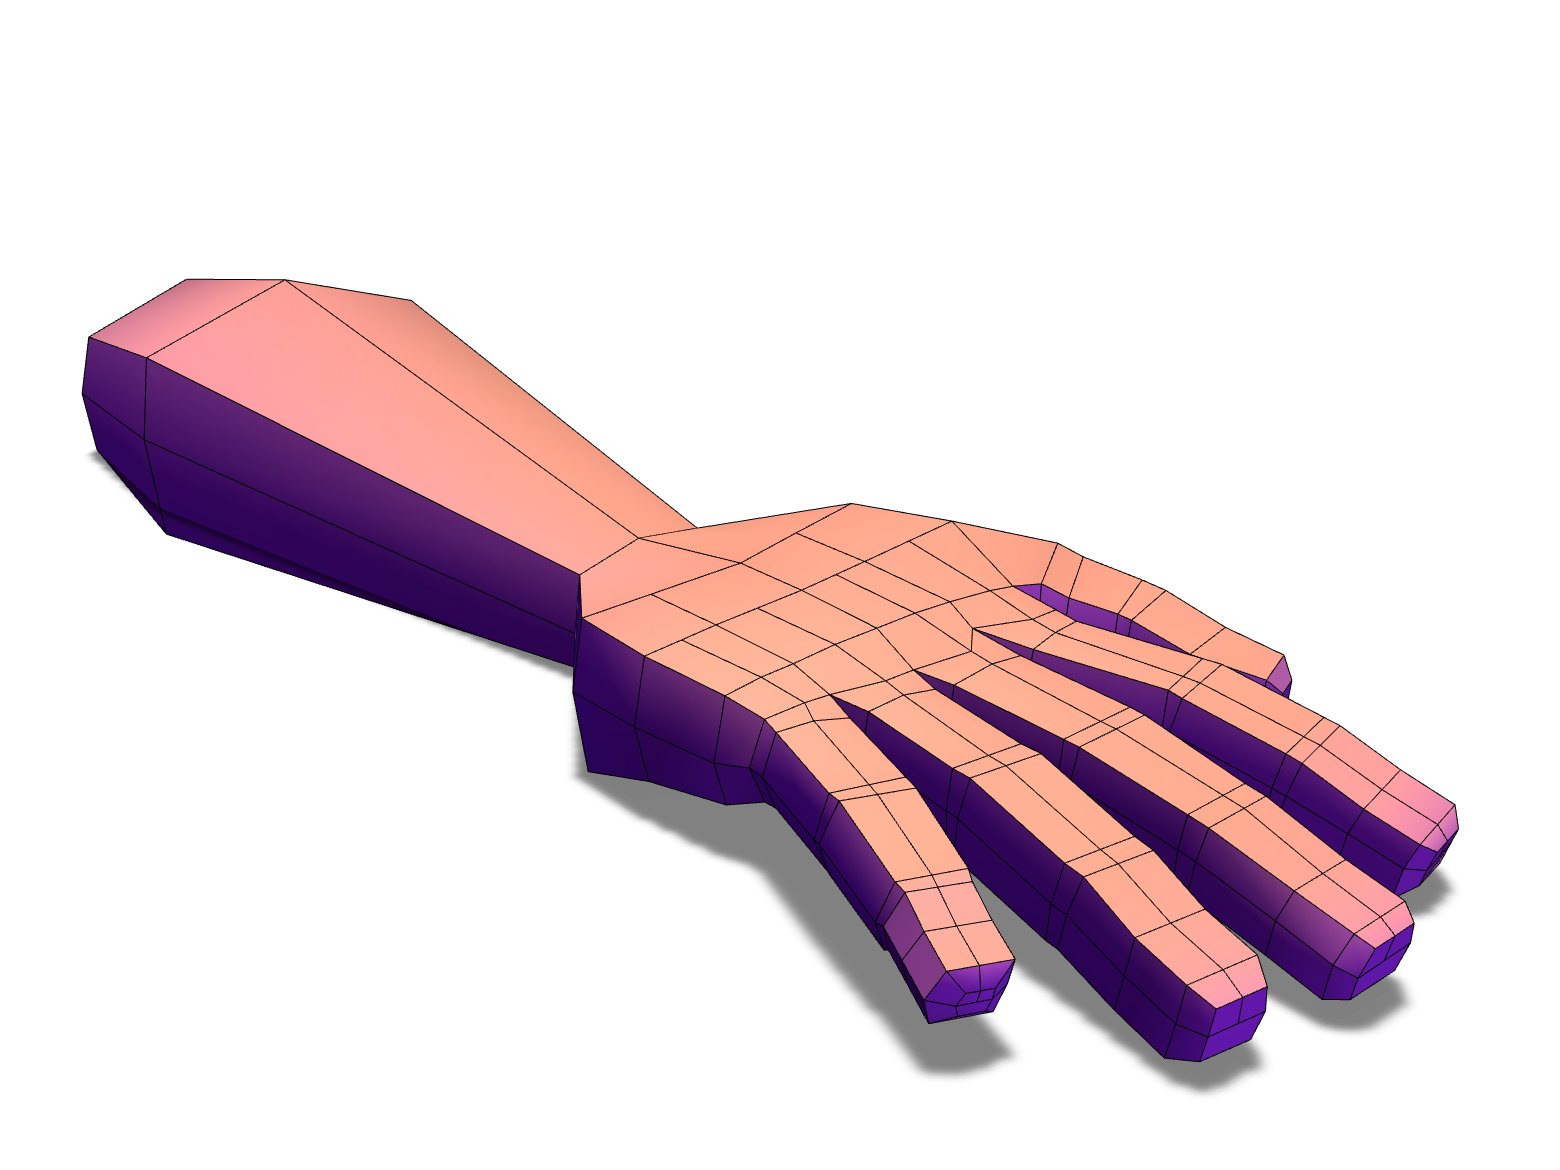 Human arm - 3D design by phillipsalf Dec 27, 2017